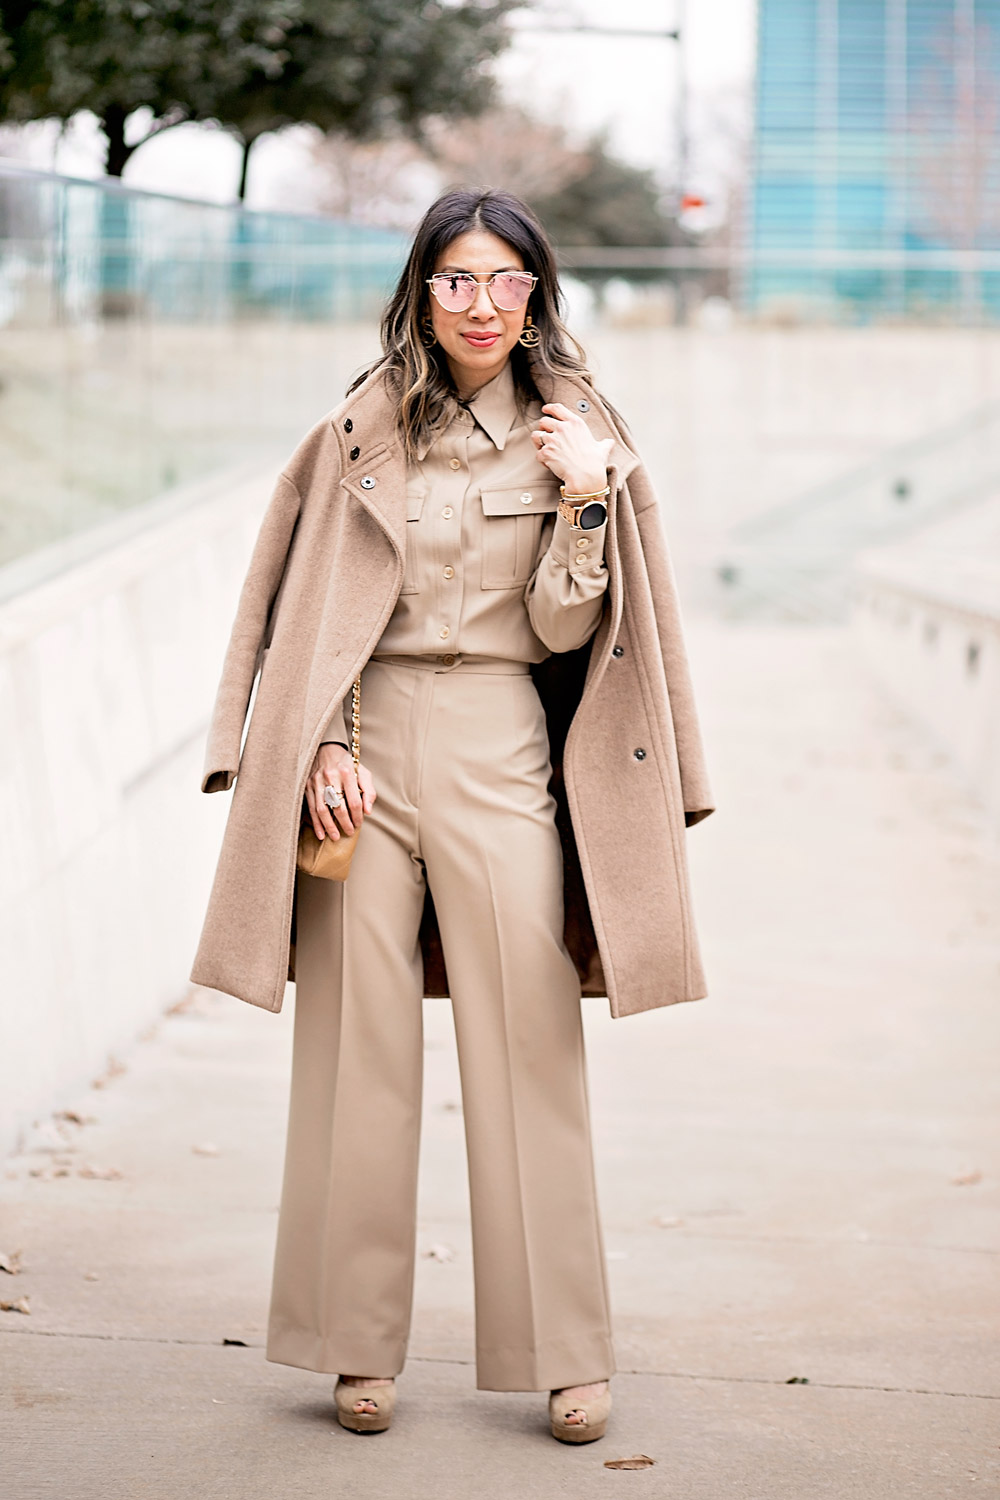 camel coat and beige coord set chanel earrings